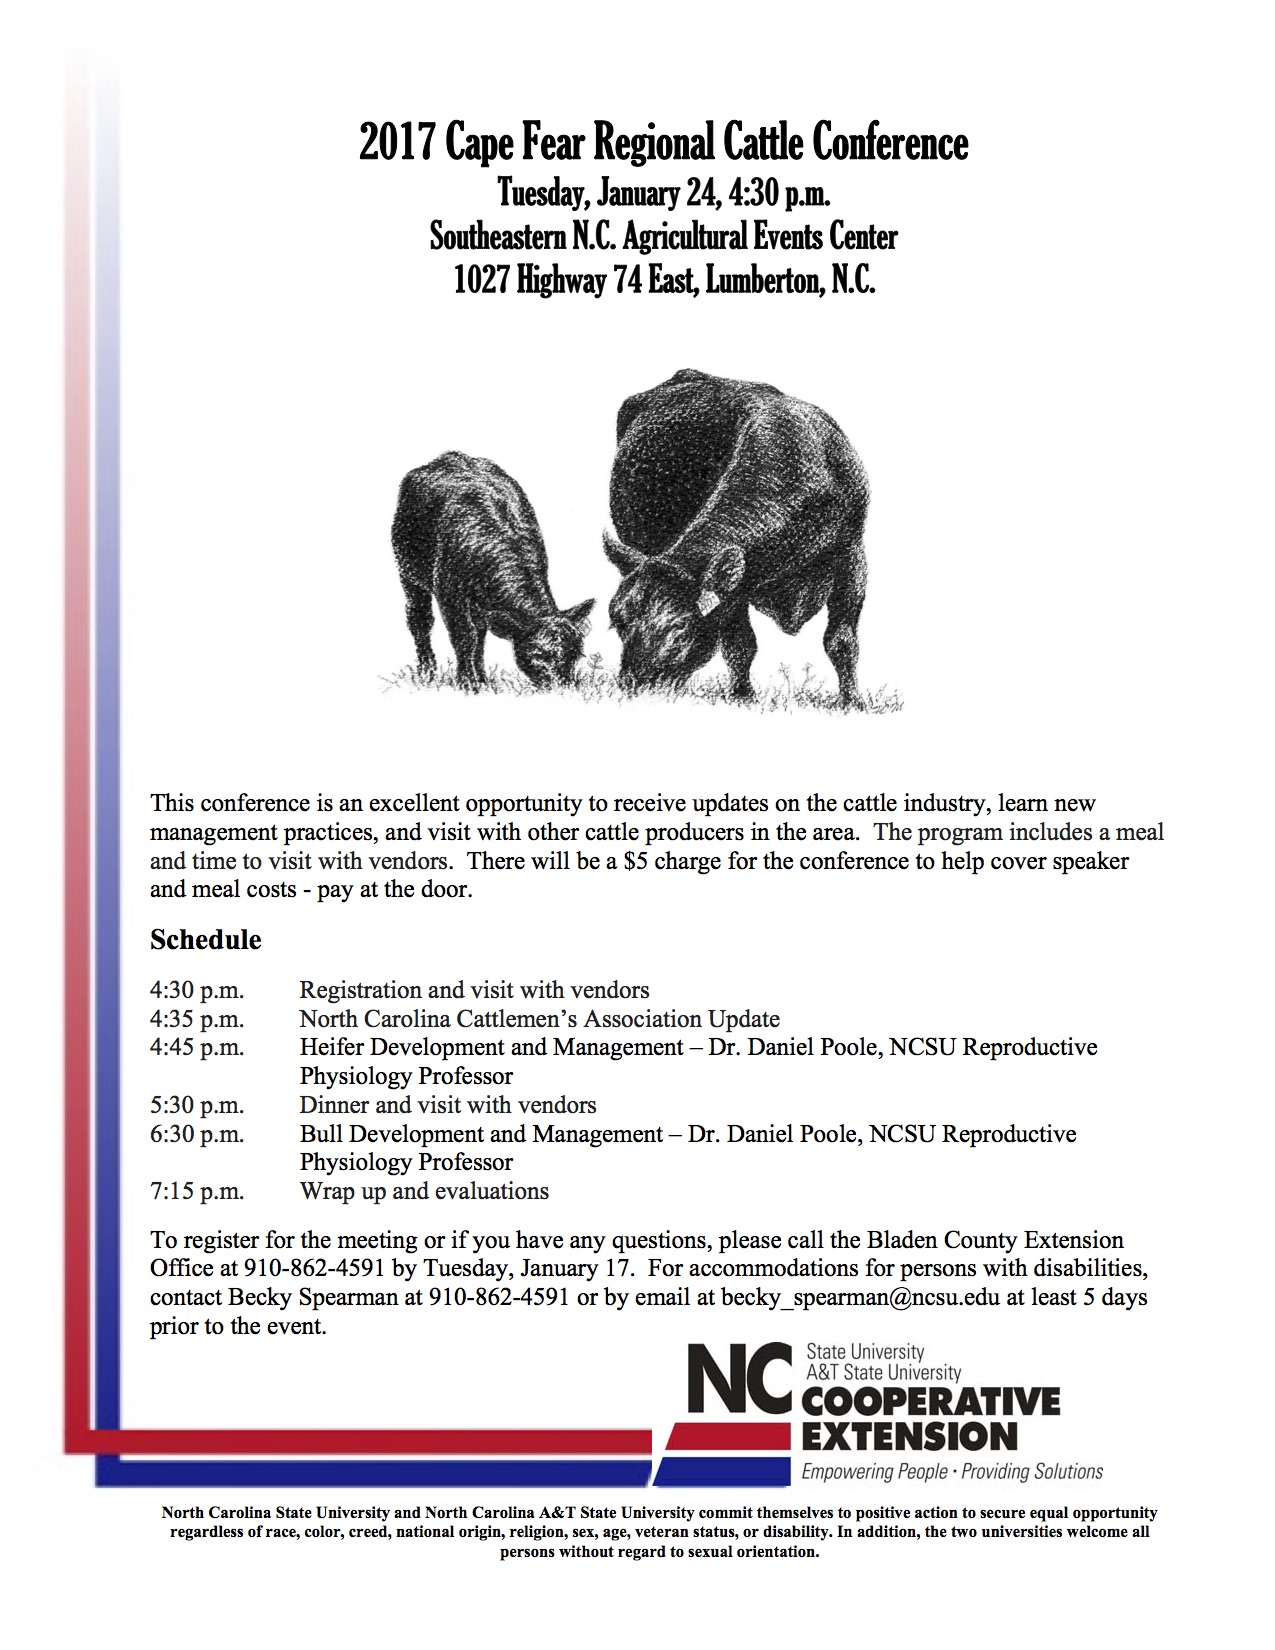 Cape Fear Cattle Conference set for January 24